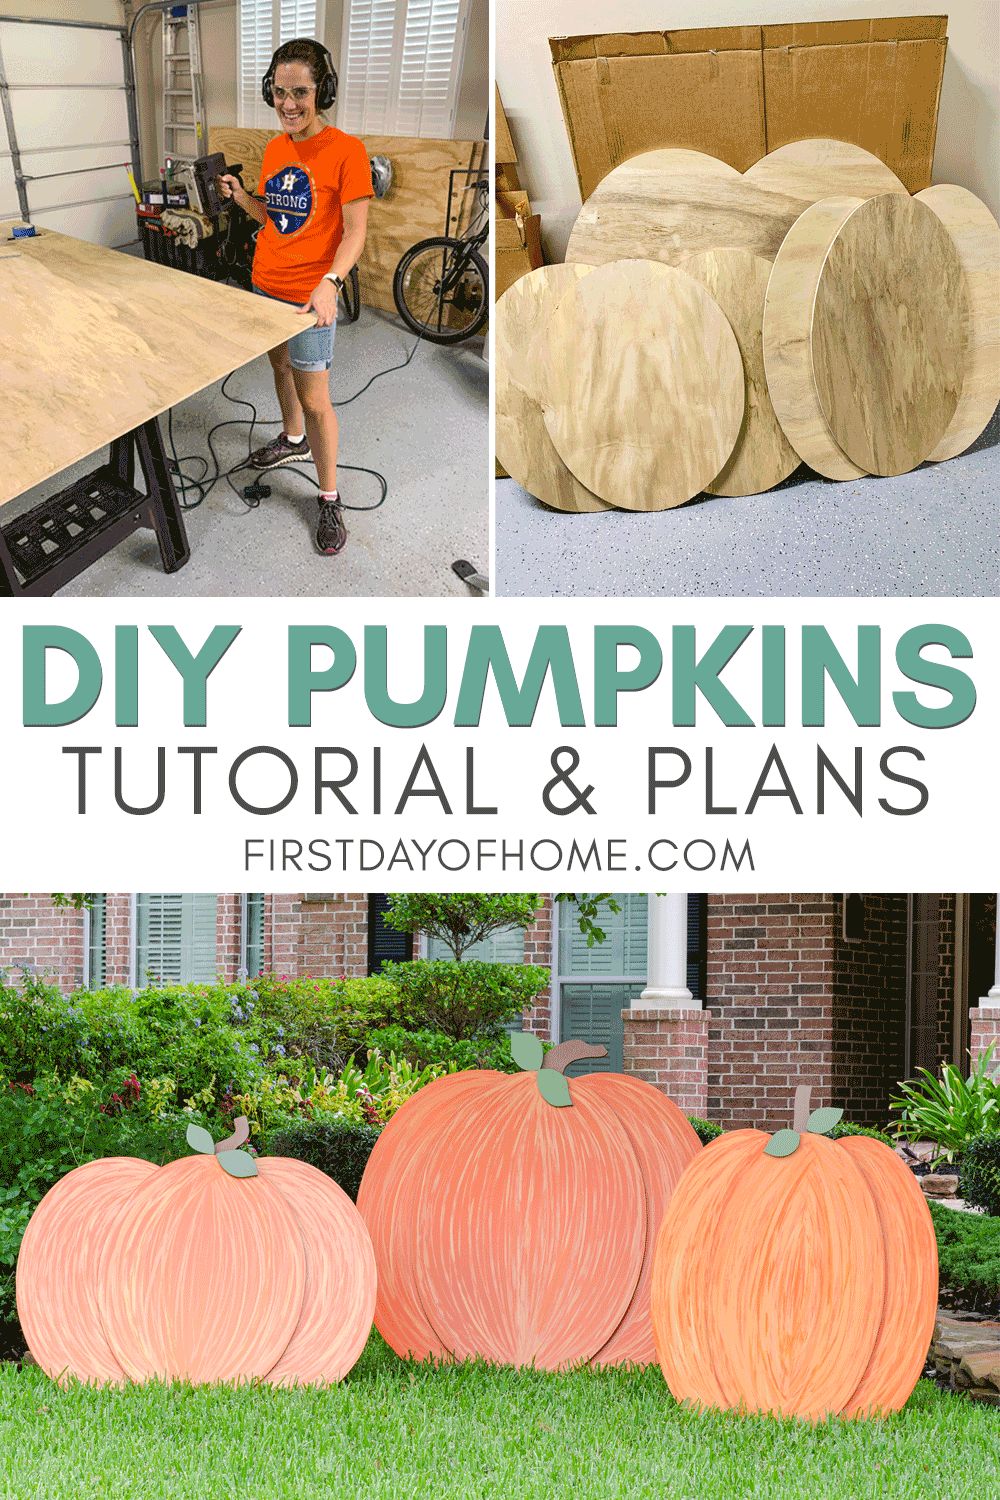 DIY wooden pumpkin cutouts for yard decorations